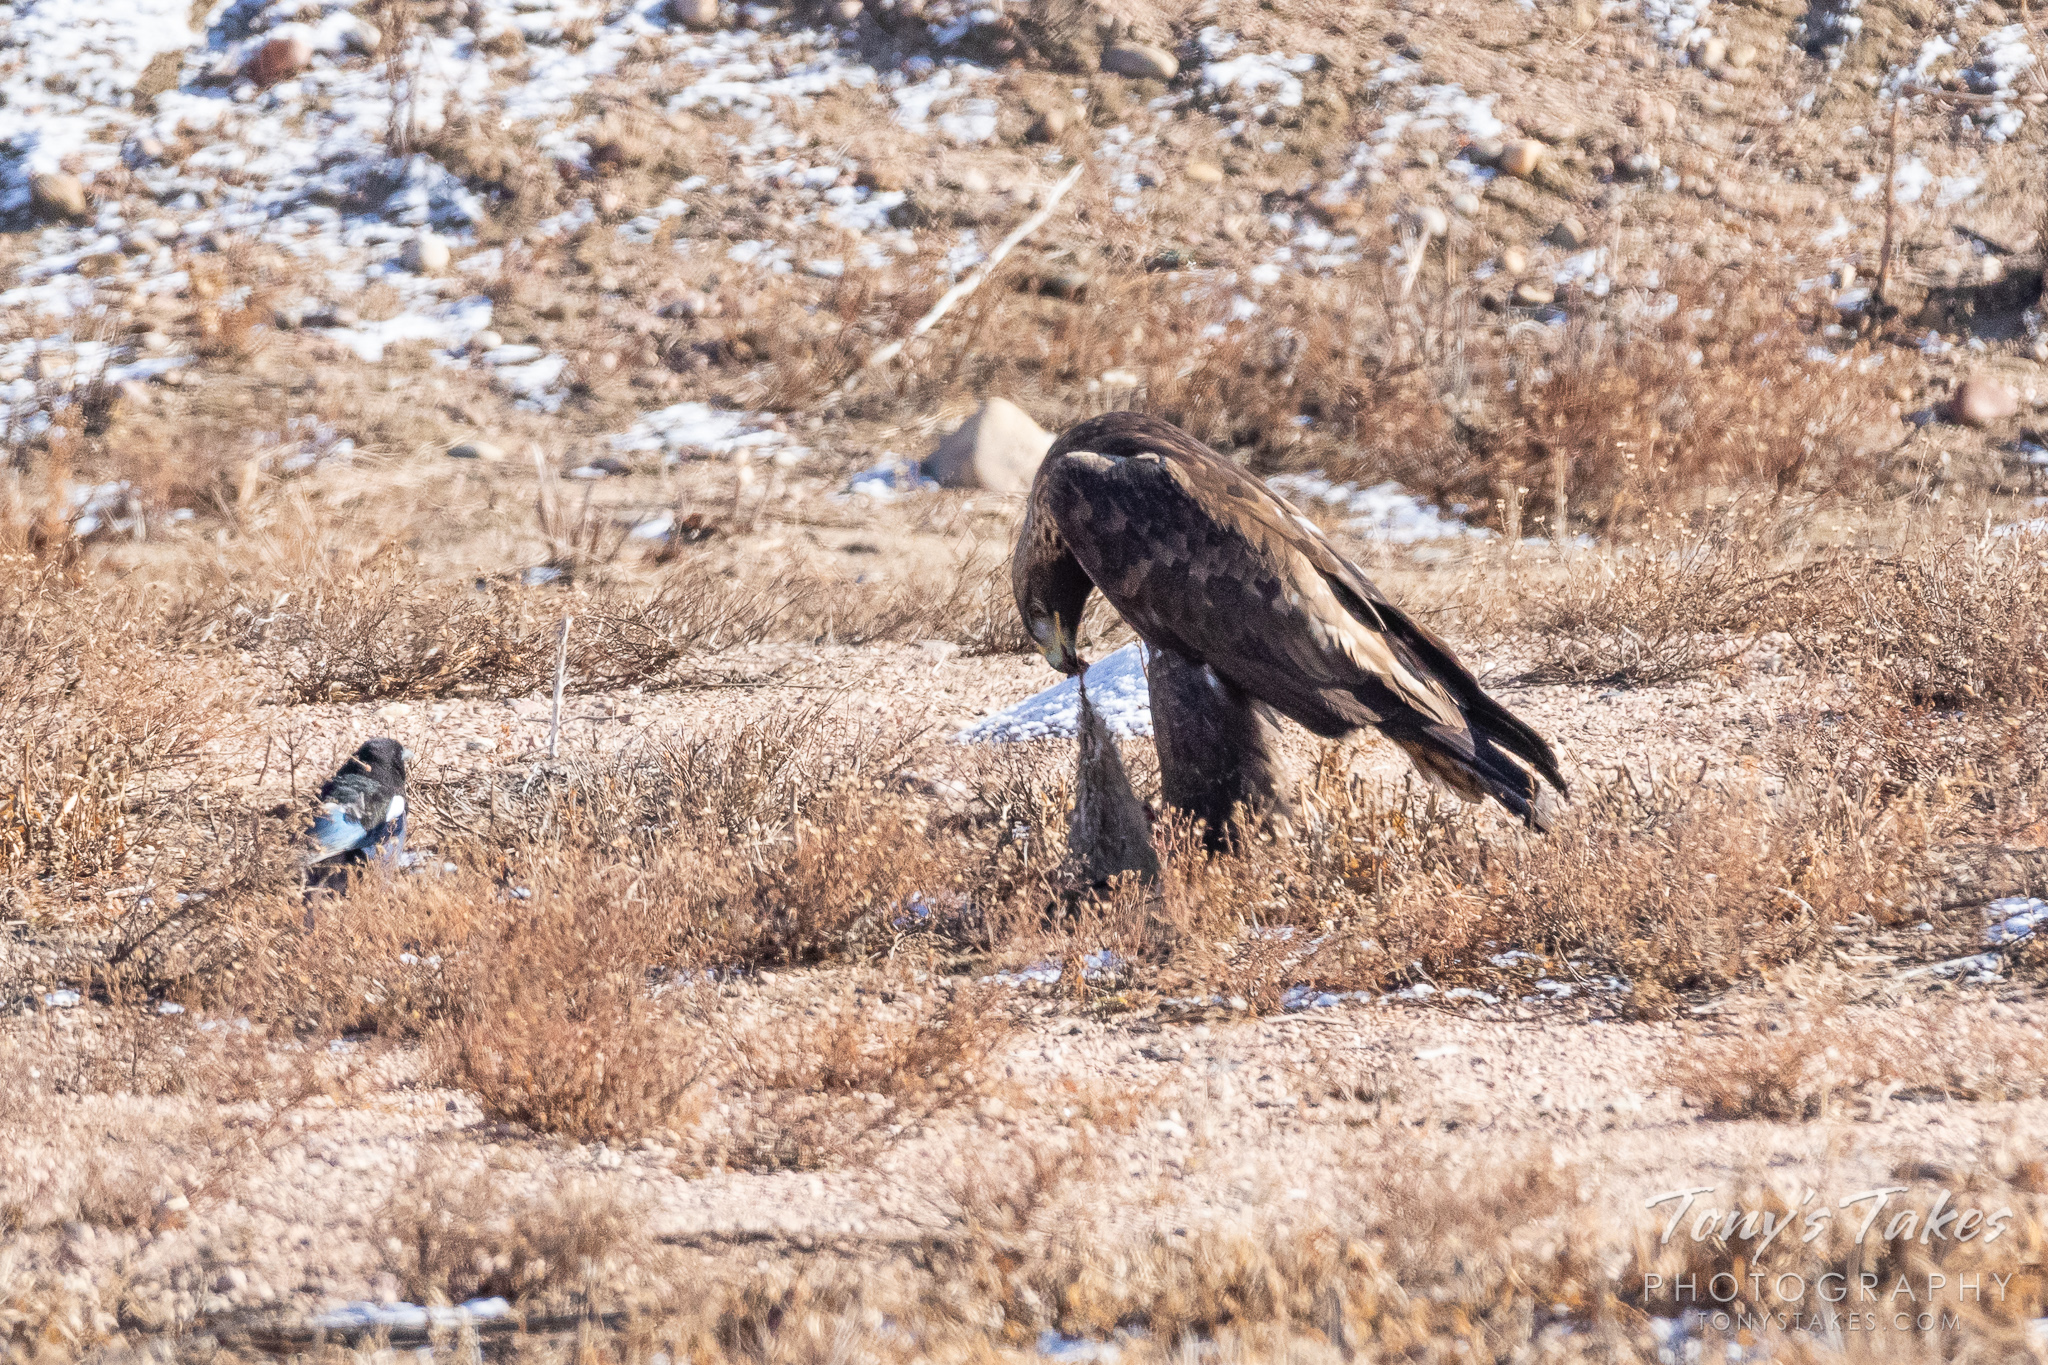 A Golden Eagle enjoys a meal near the South Platte River in Adams County, Colorado. (© Tony's Takes)